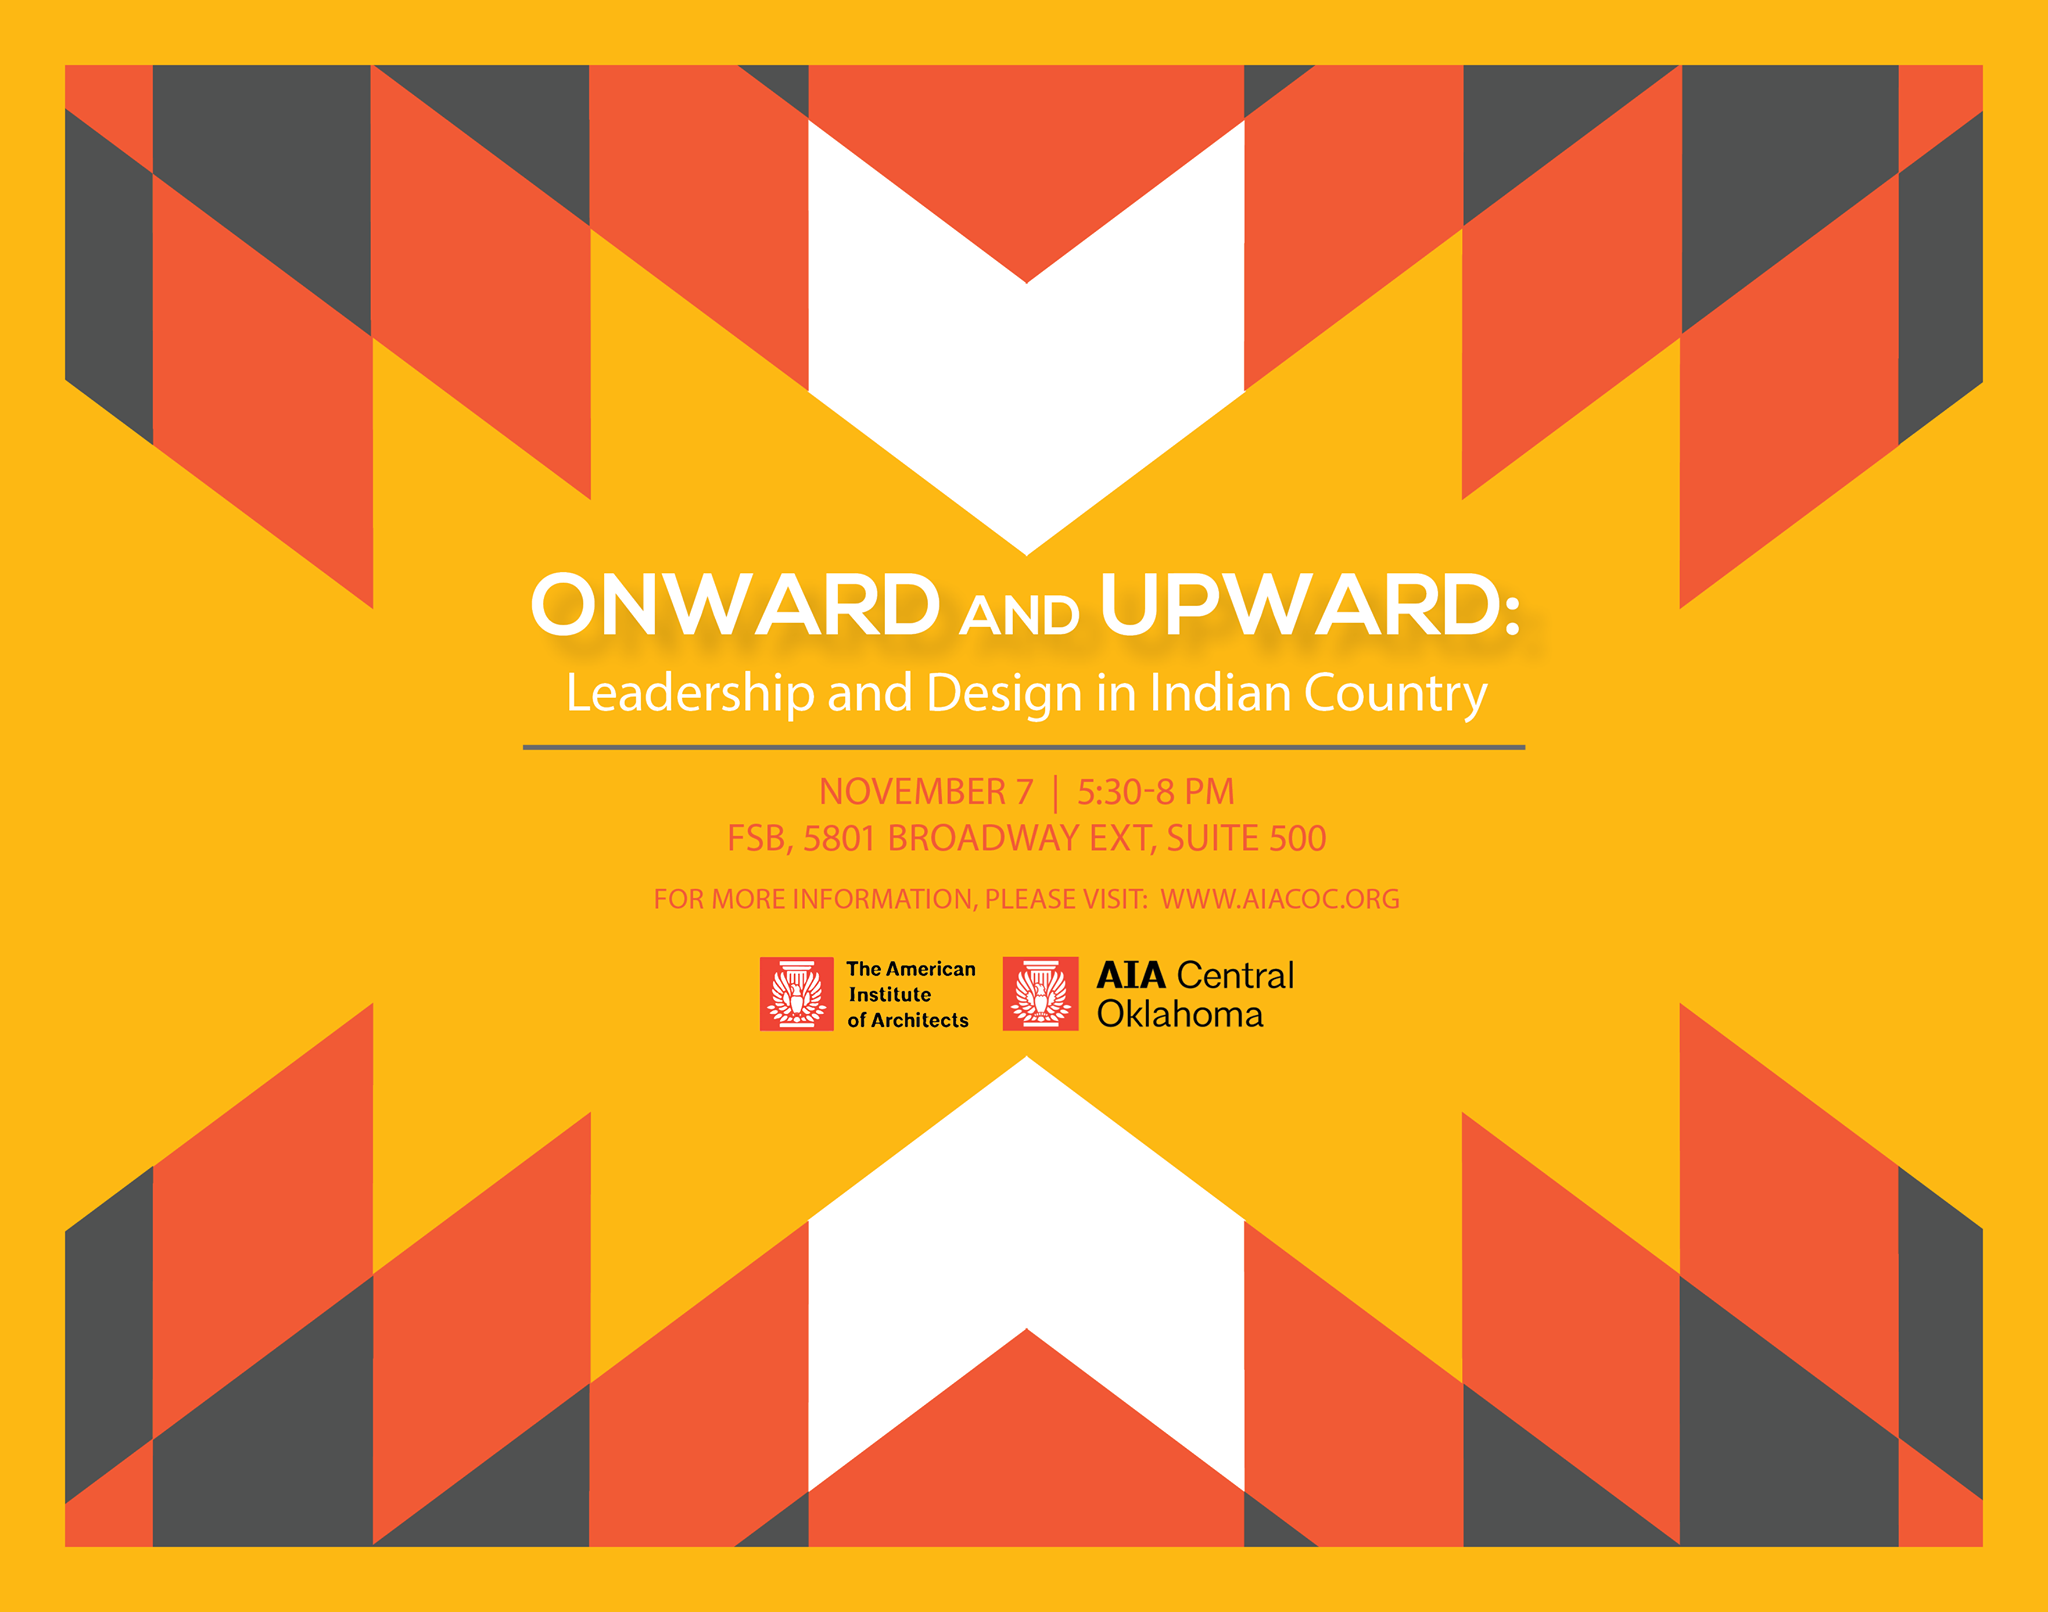 Onward and Upward: Leadership and Design in Indian Country, event flyer